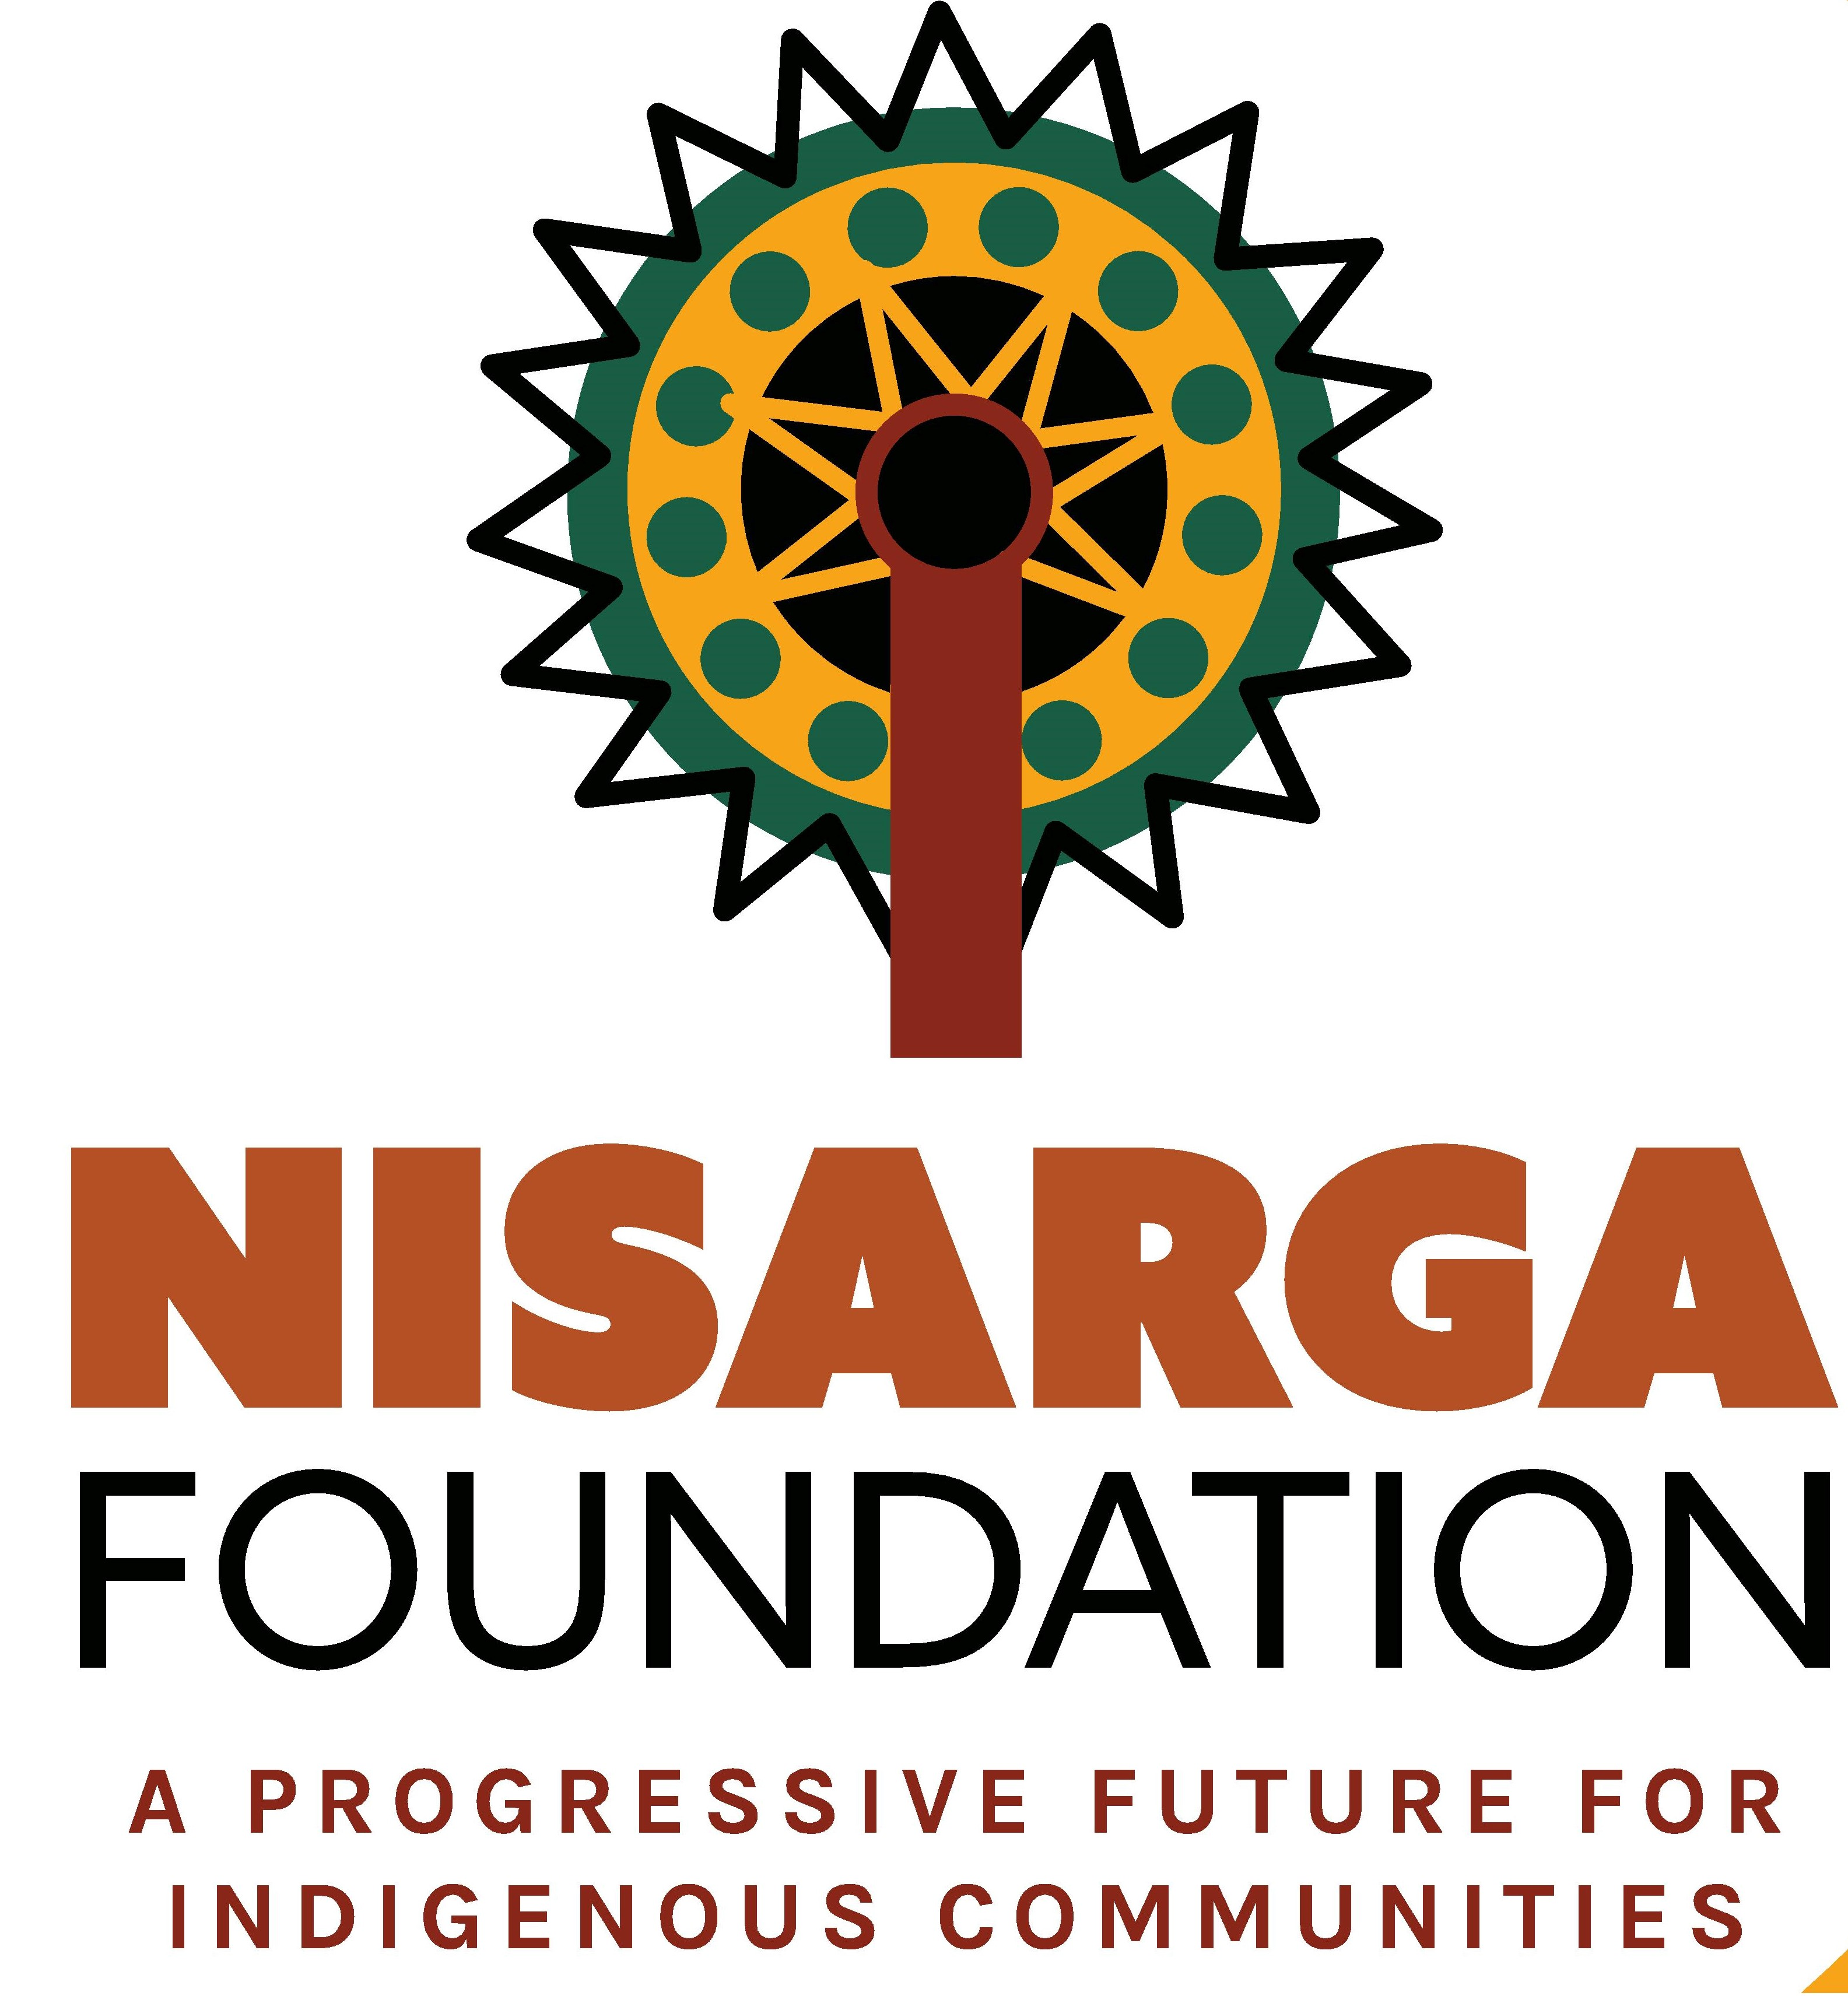 /media/nisarga/Nisarga_new_logo.jpg